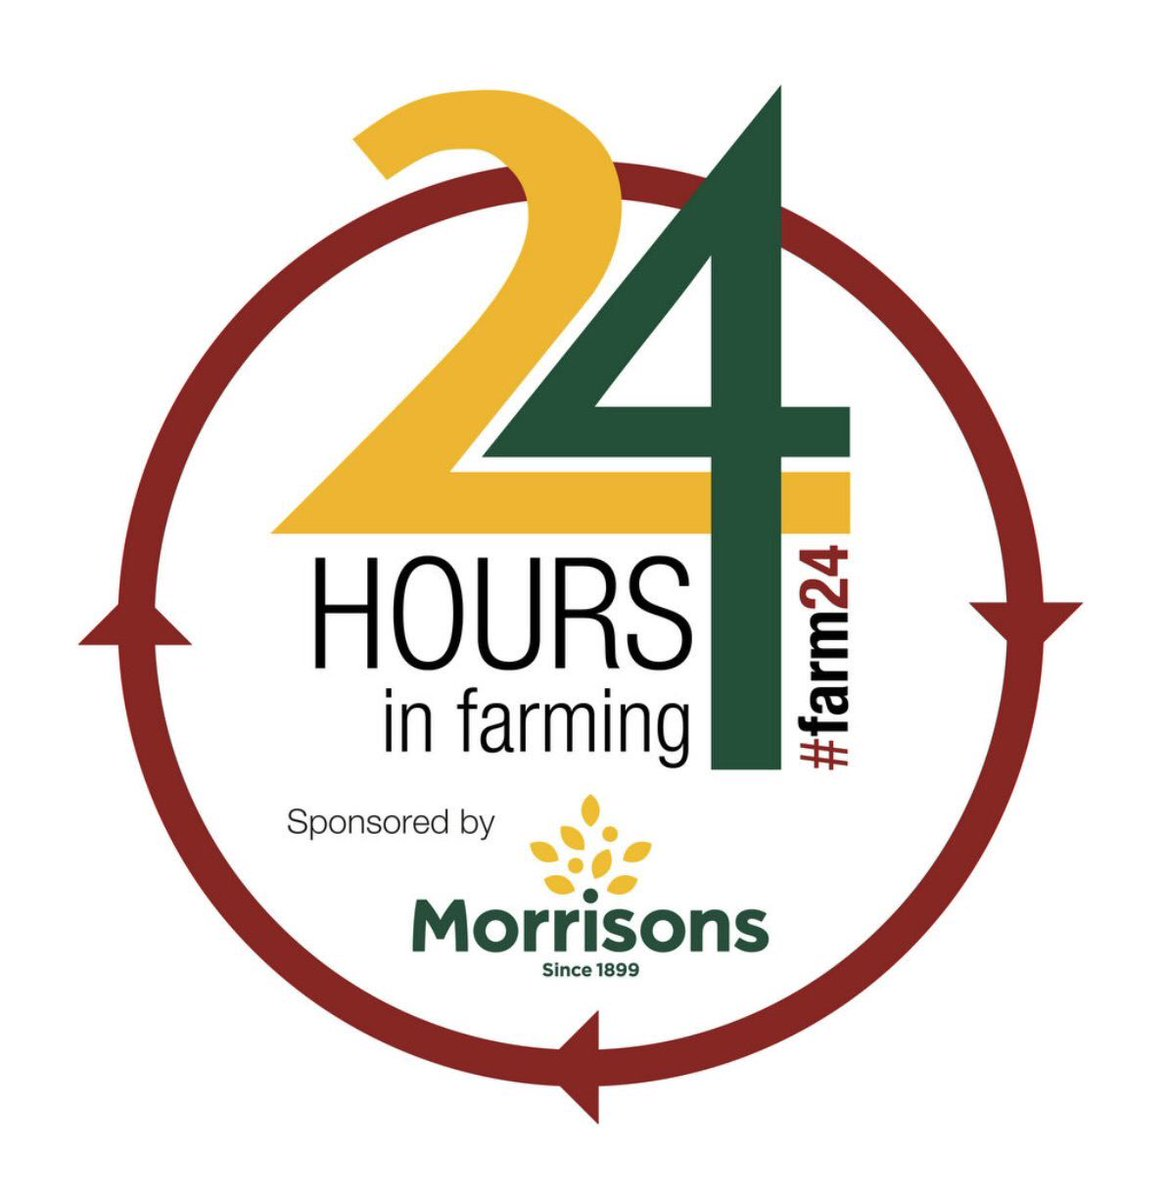 In addition to farming work now includes related organisations supporting the #agrifood industry  @AgriSearchNI @CIELivestock1 @CSLNI @LantraUK #RUAS @RUASWinterFair #Farm24<br>http://pic.twitter.com/Pz2krMg5oQ